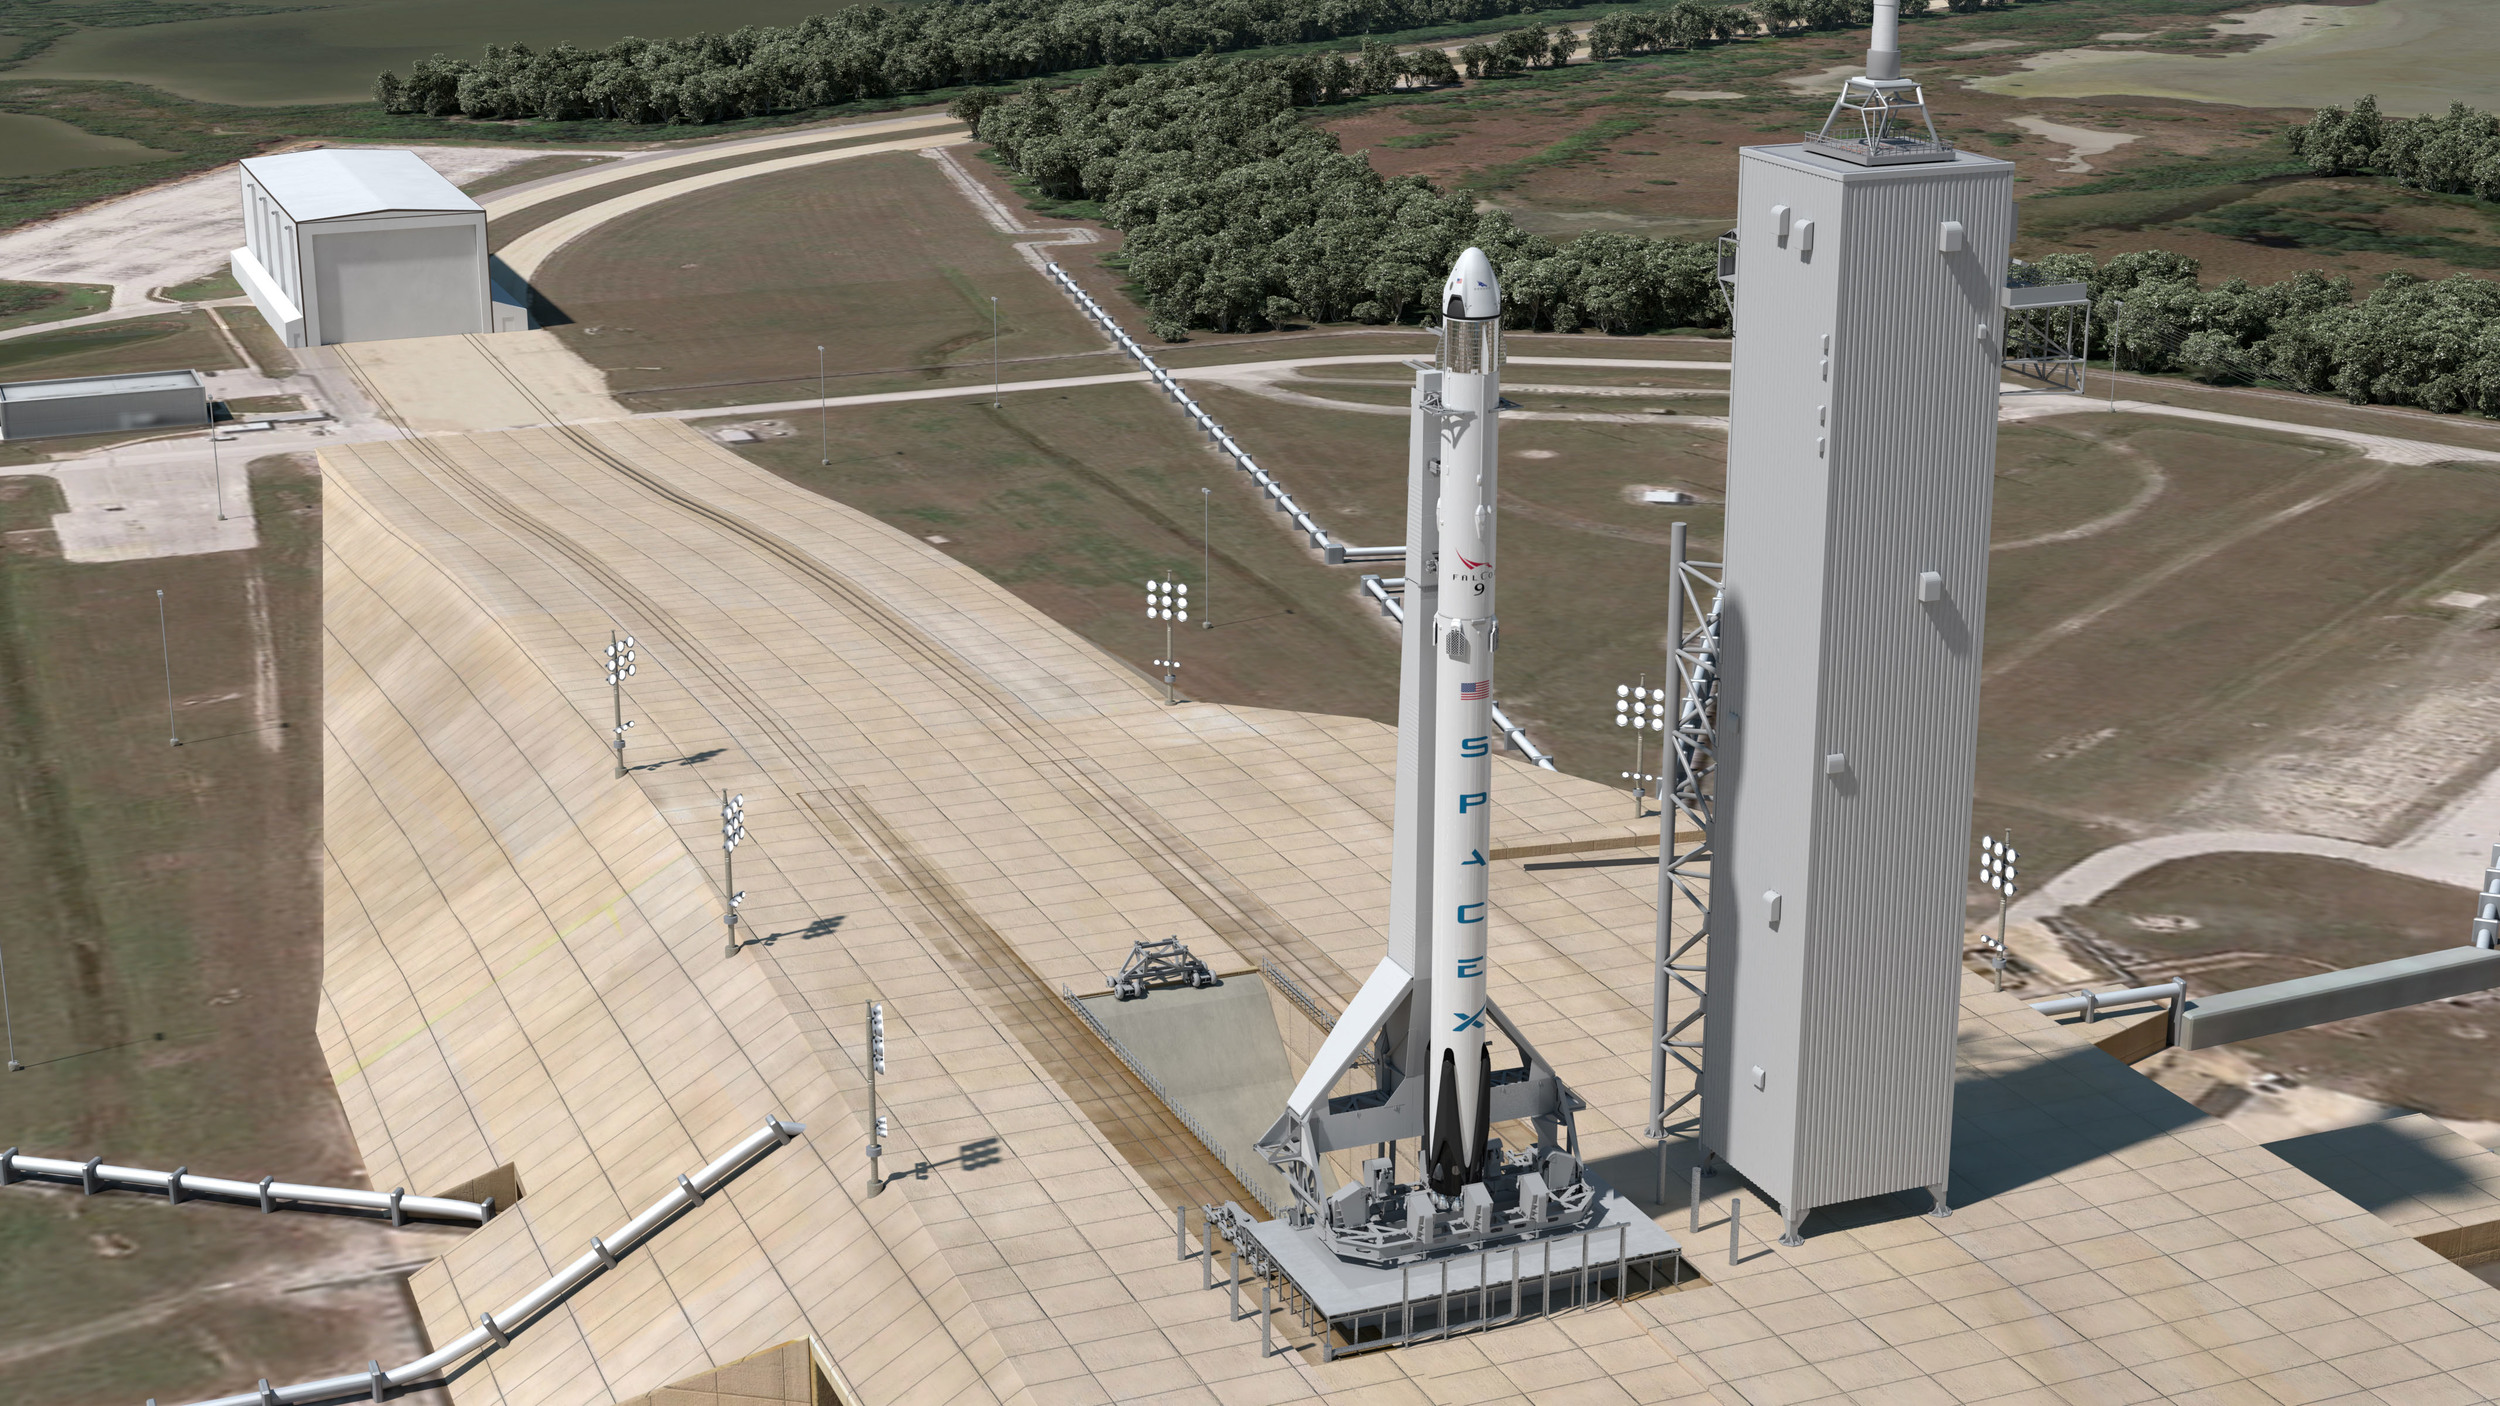 An artist's rendering of Crew Dragon atop a Falcon 9 at Launch Complex 39A. Image Credit: SpaceX